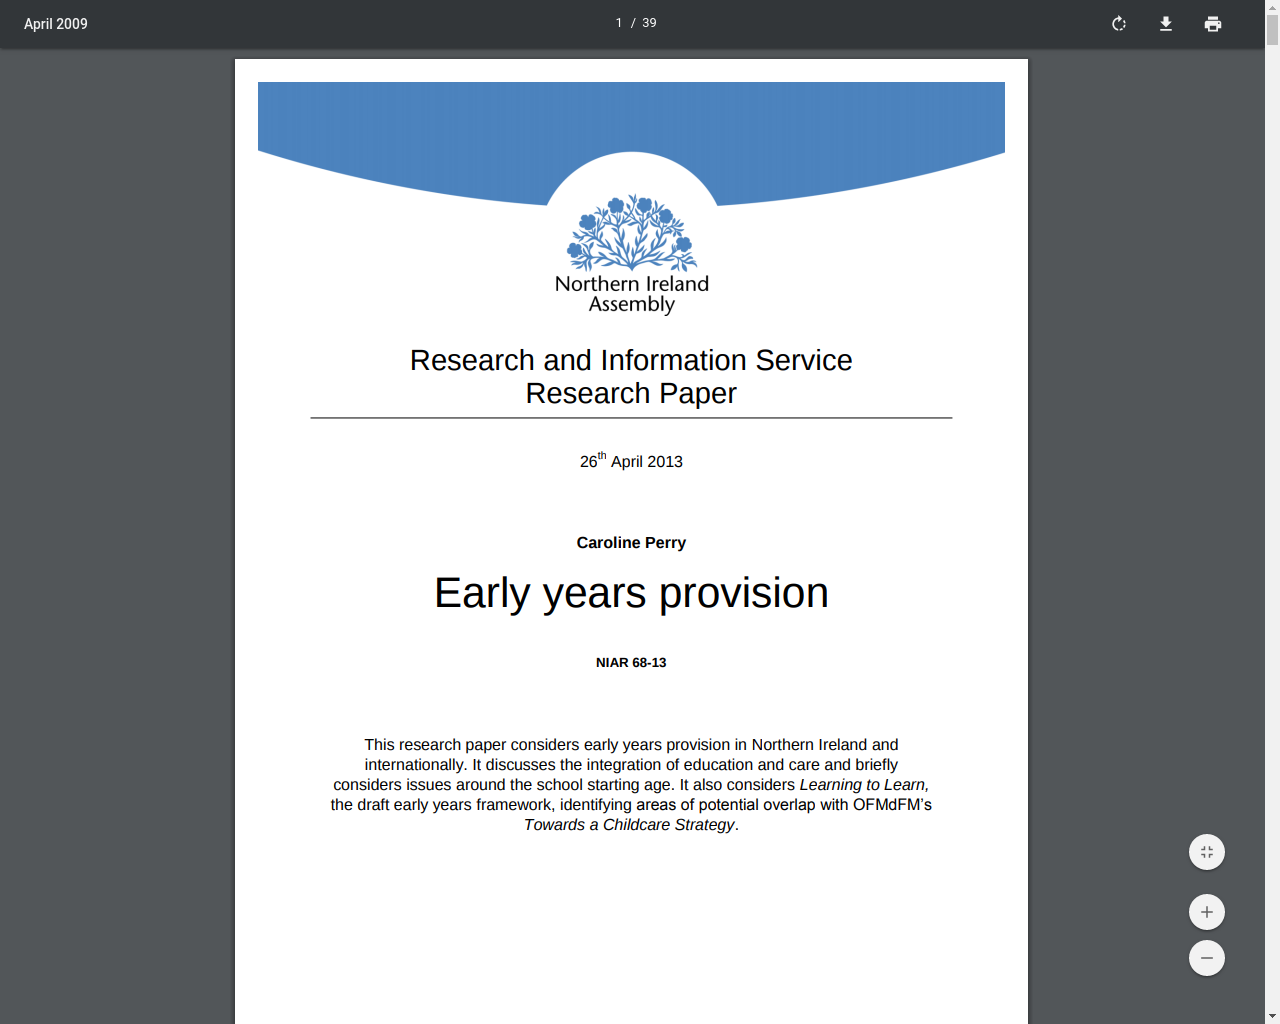 Northern Ireland Assembly - Early years provision